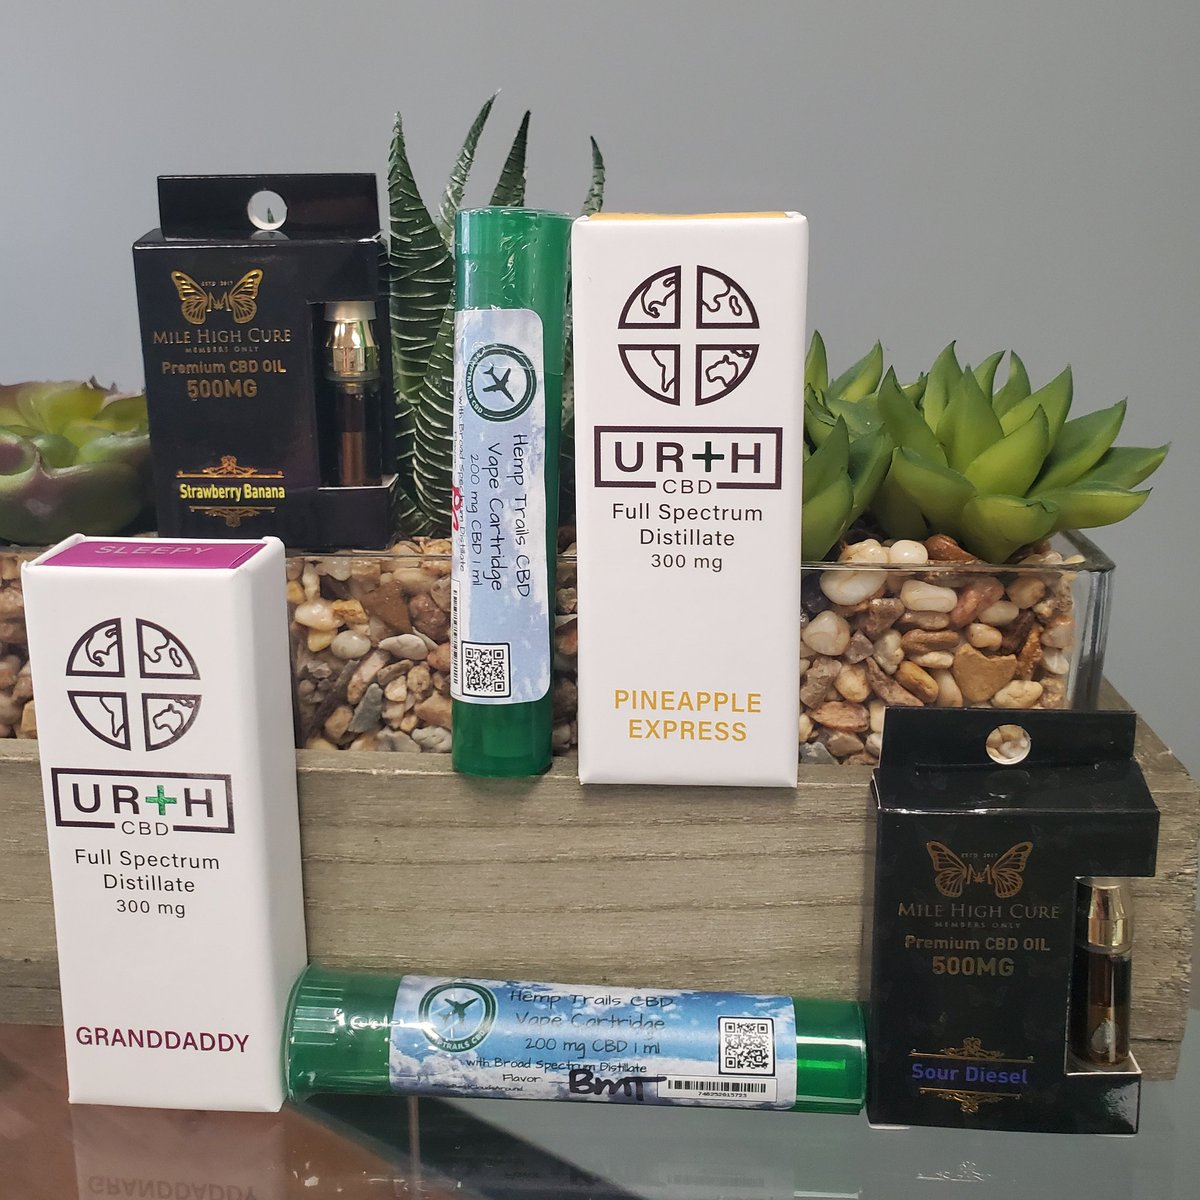 #TodaysSpecial are #VapeCartridges Did you know #VapingCBD has been shown to strengthen lungs in studies? #Hemp #CBD We are #NowOpen in #OaklandTN at 7085 Highway 64 and in #MemphisTN #The9oh1 at 2690 Kirby Whitten Road #CannabisCures#HempHelps #CBDPlusSoMuchMorepic.twitter.com/1dtbDaZgCq